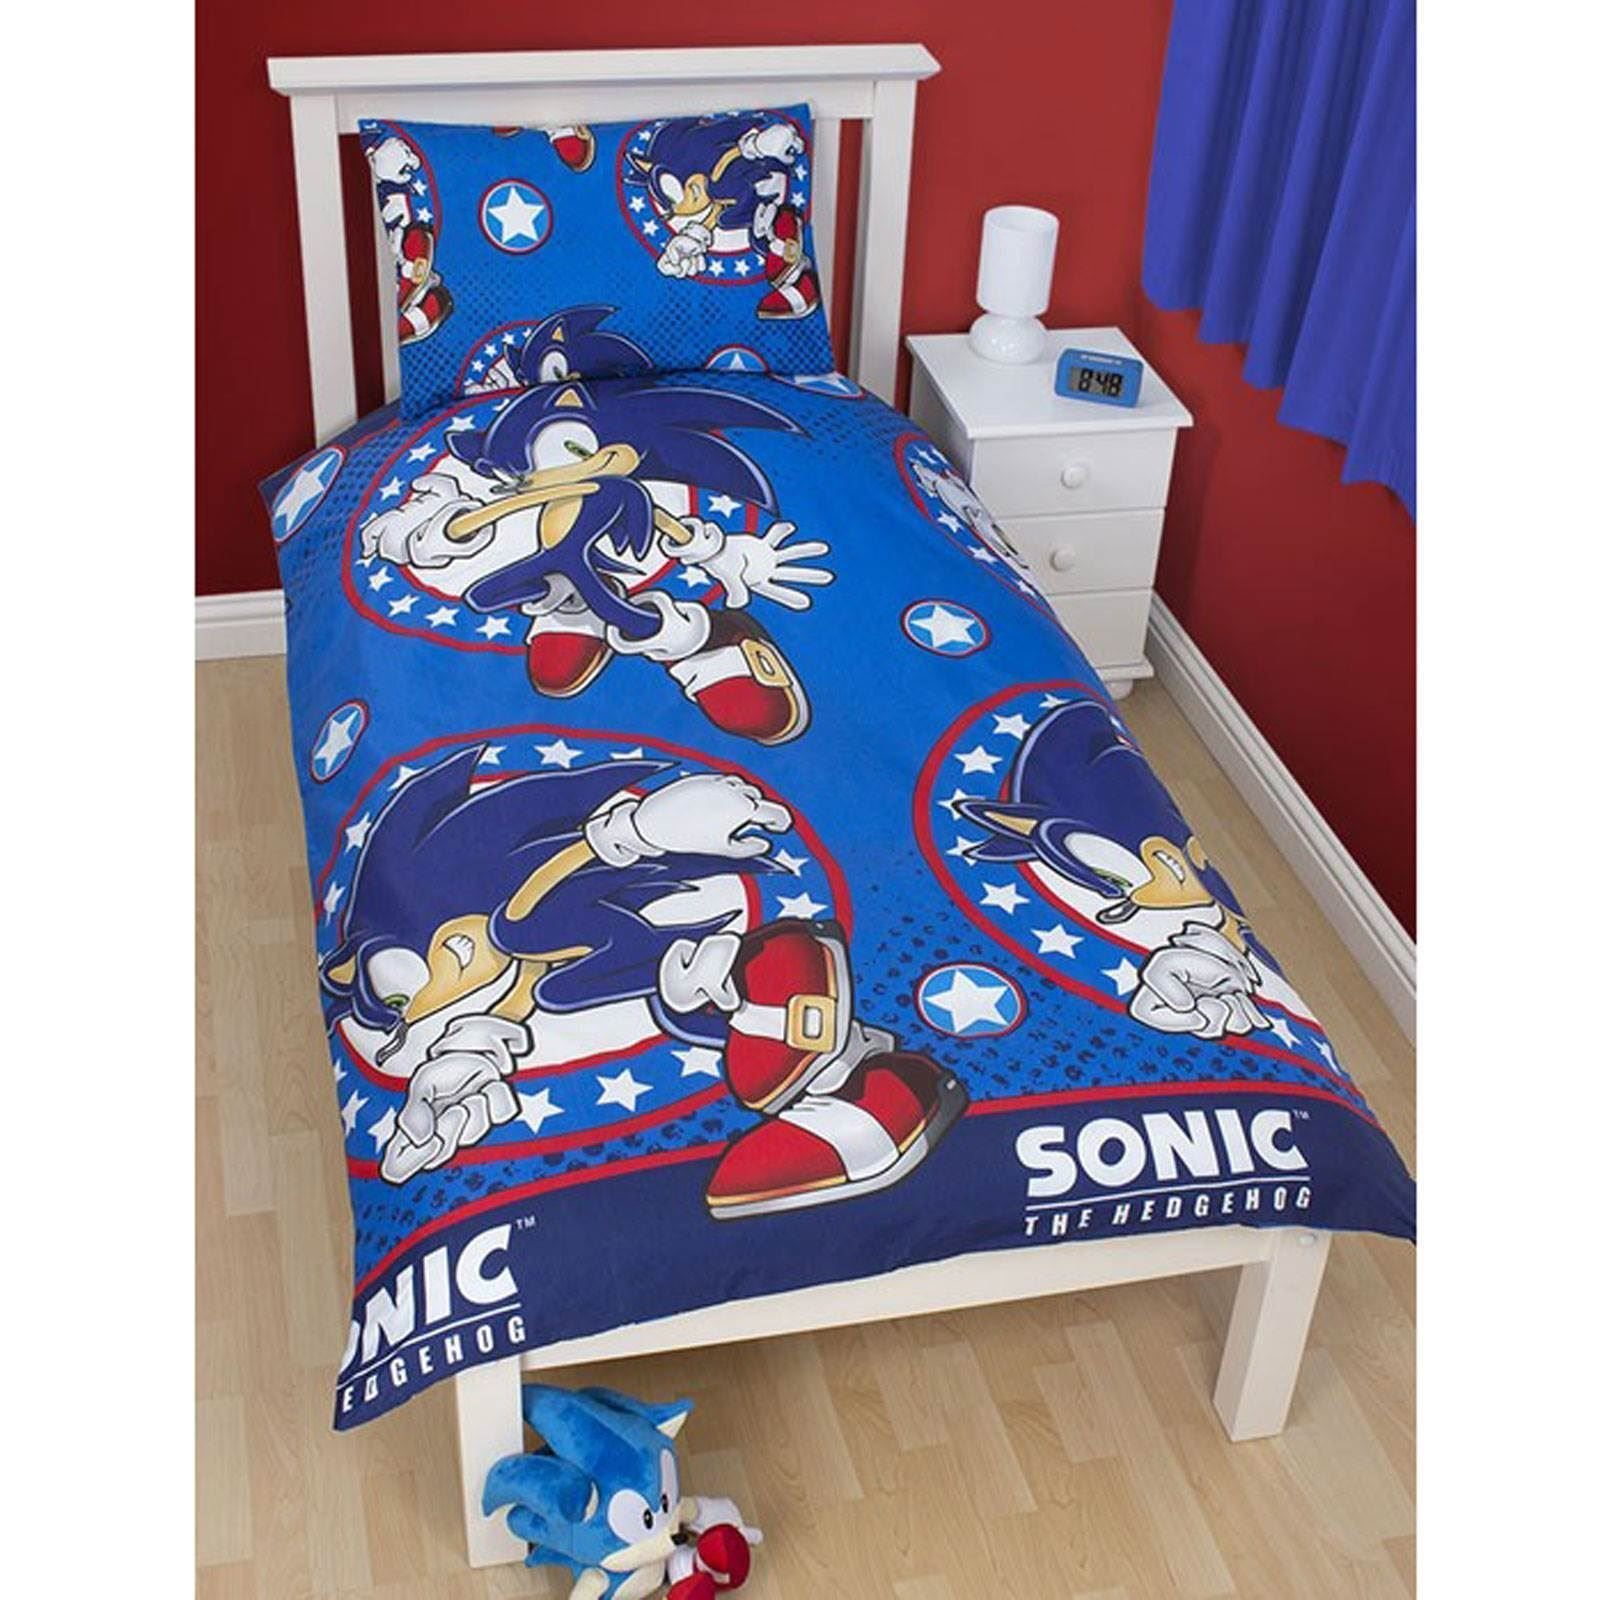 Best Sonic The Hedgehog Bedroom – Single Double Duvet Covers With Pictures